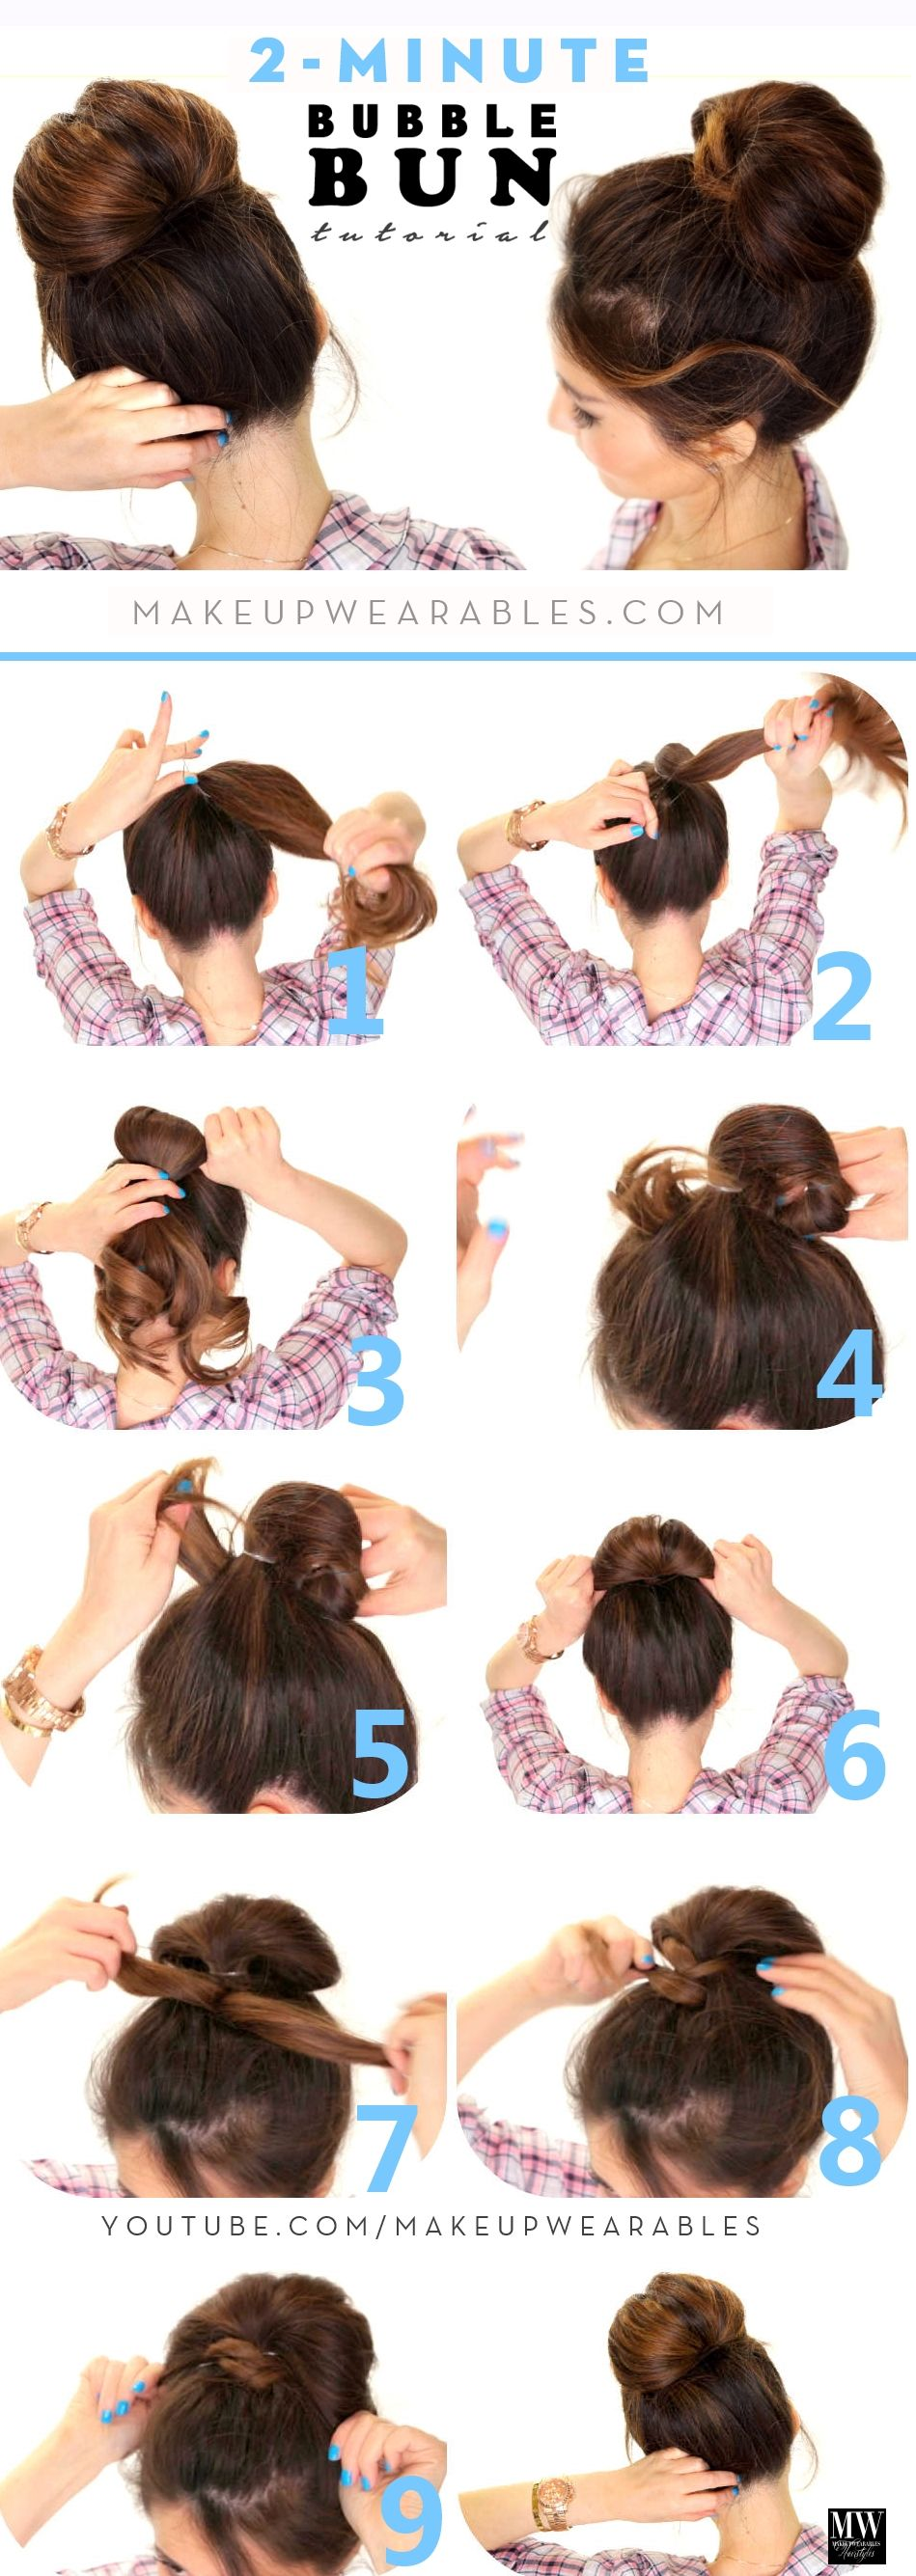 Minute bubble bun cute updo hairstyles for long medium hair